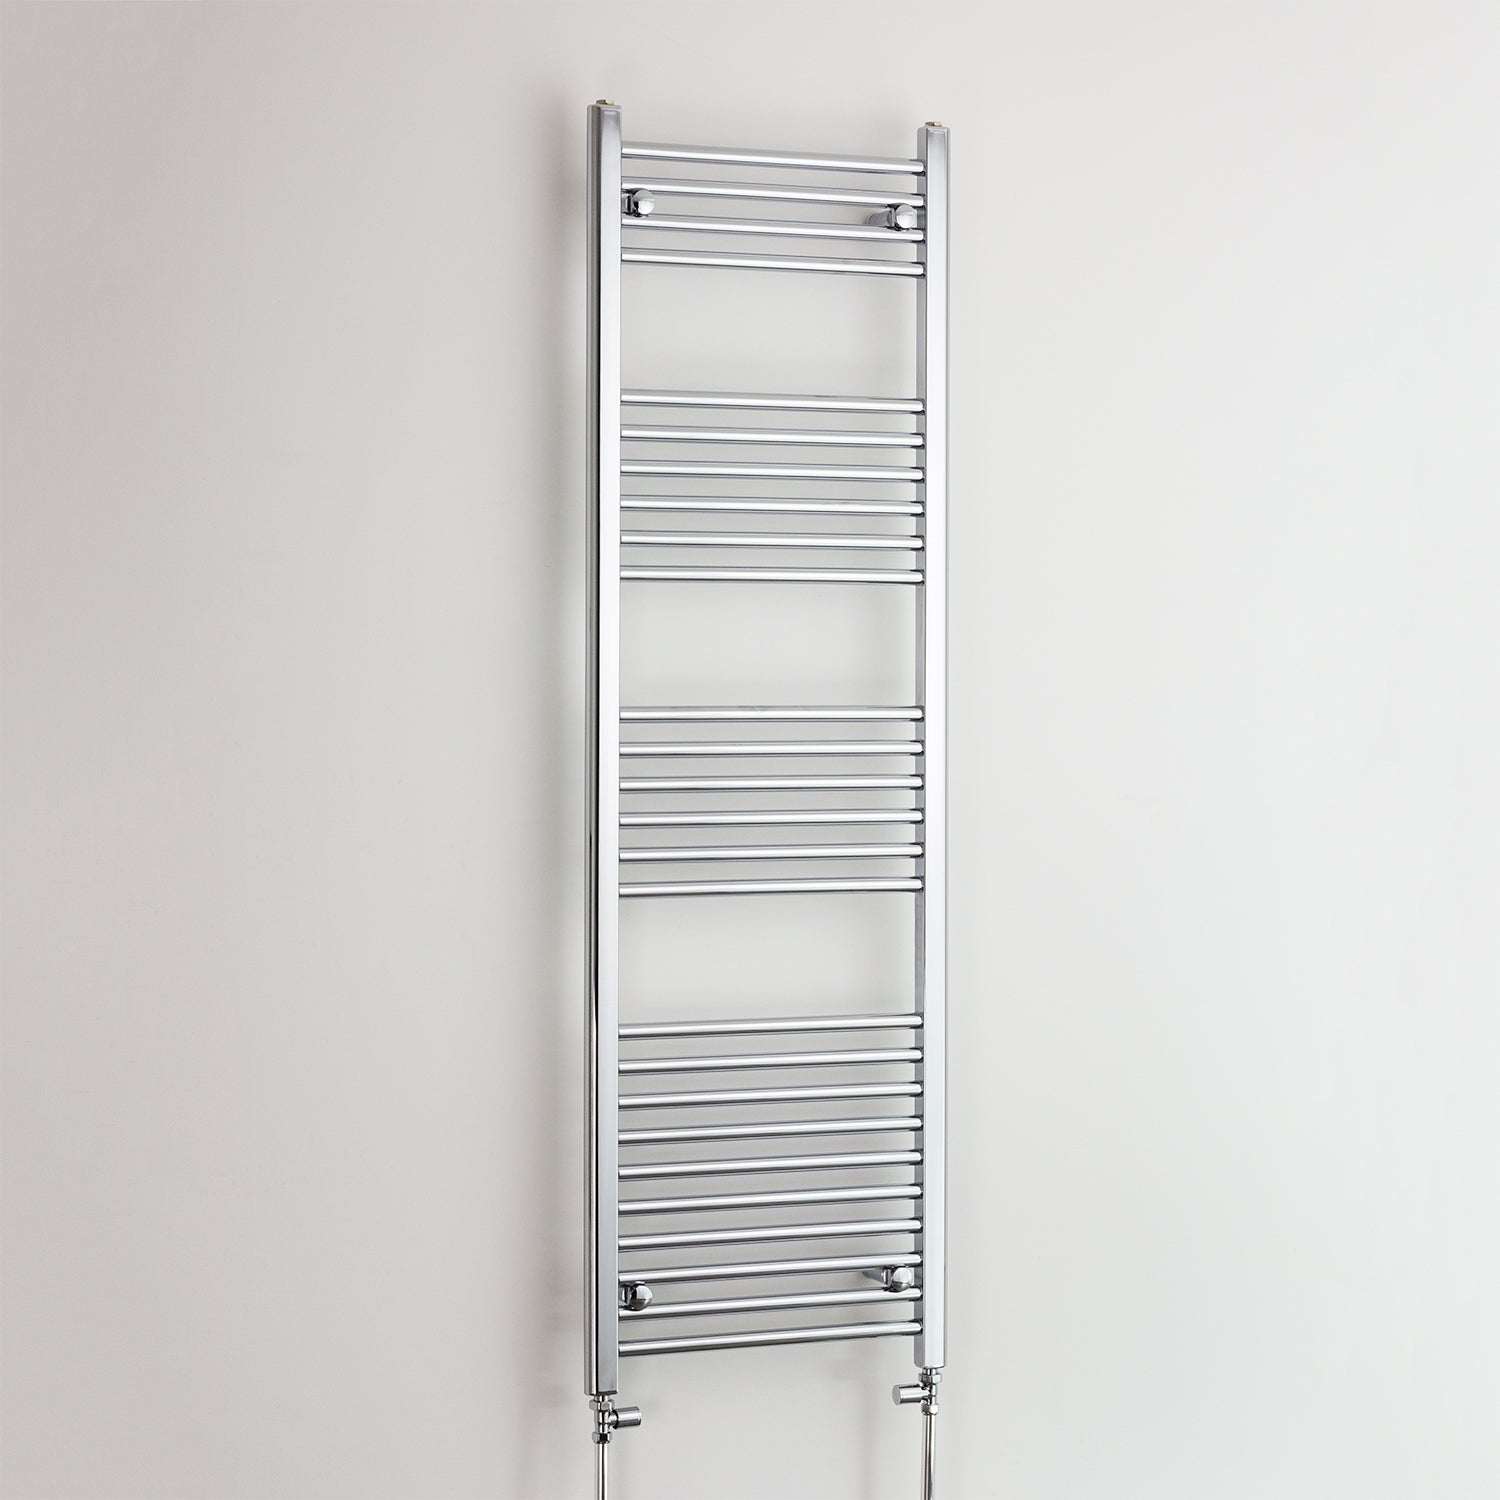 400mm Wide 1600mm High Flat Chrome Heated Towel Rail Radiator HTR,With Straight Valve